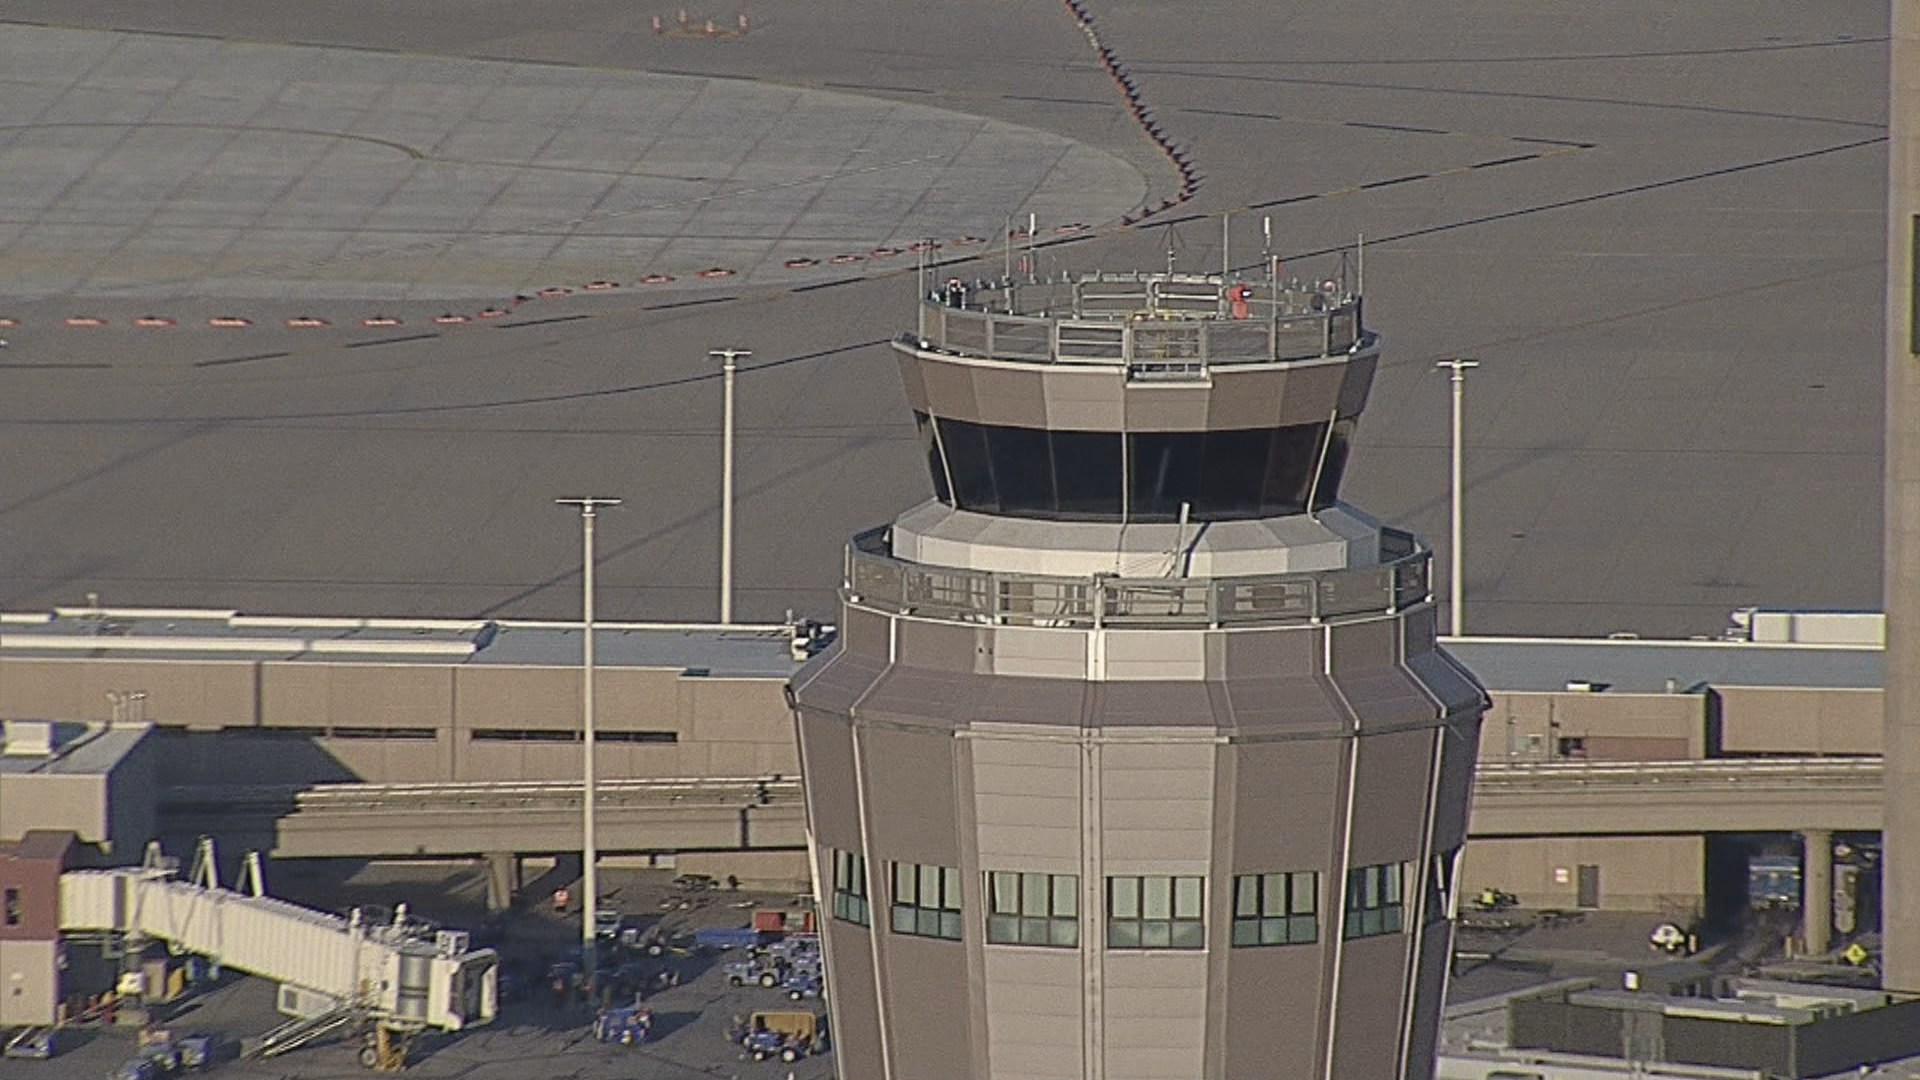 See the split-second decisions that keep you taking off and touching down safely. News 3 takes you inside the tower to see the skills required to navigate the McCarran approach. (KSNV)